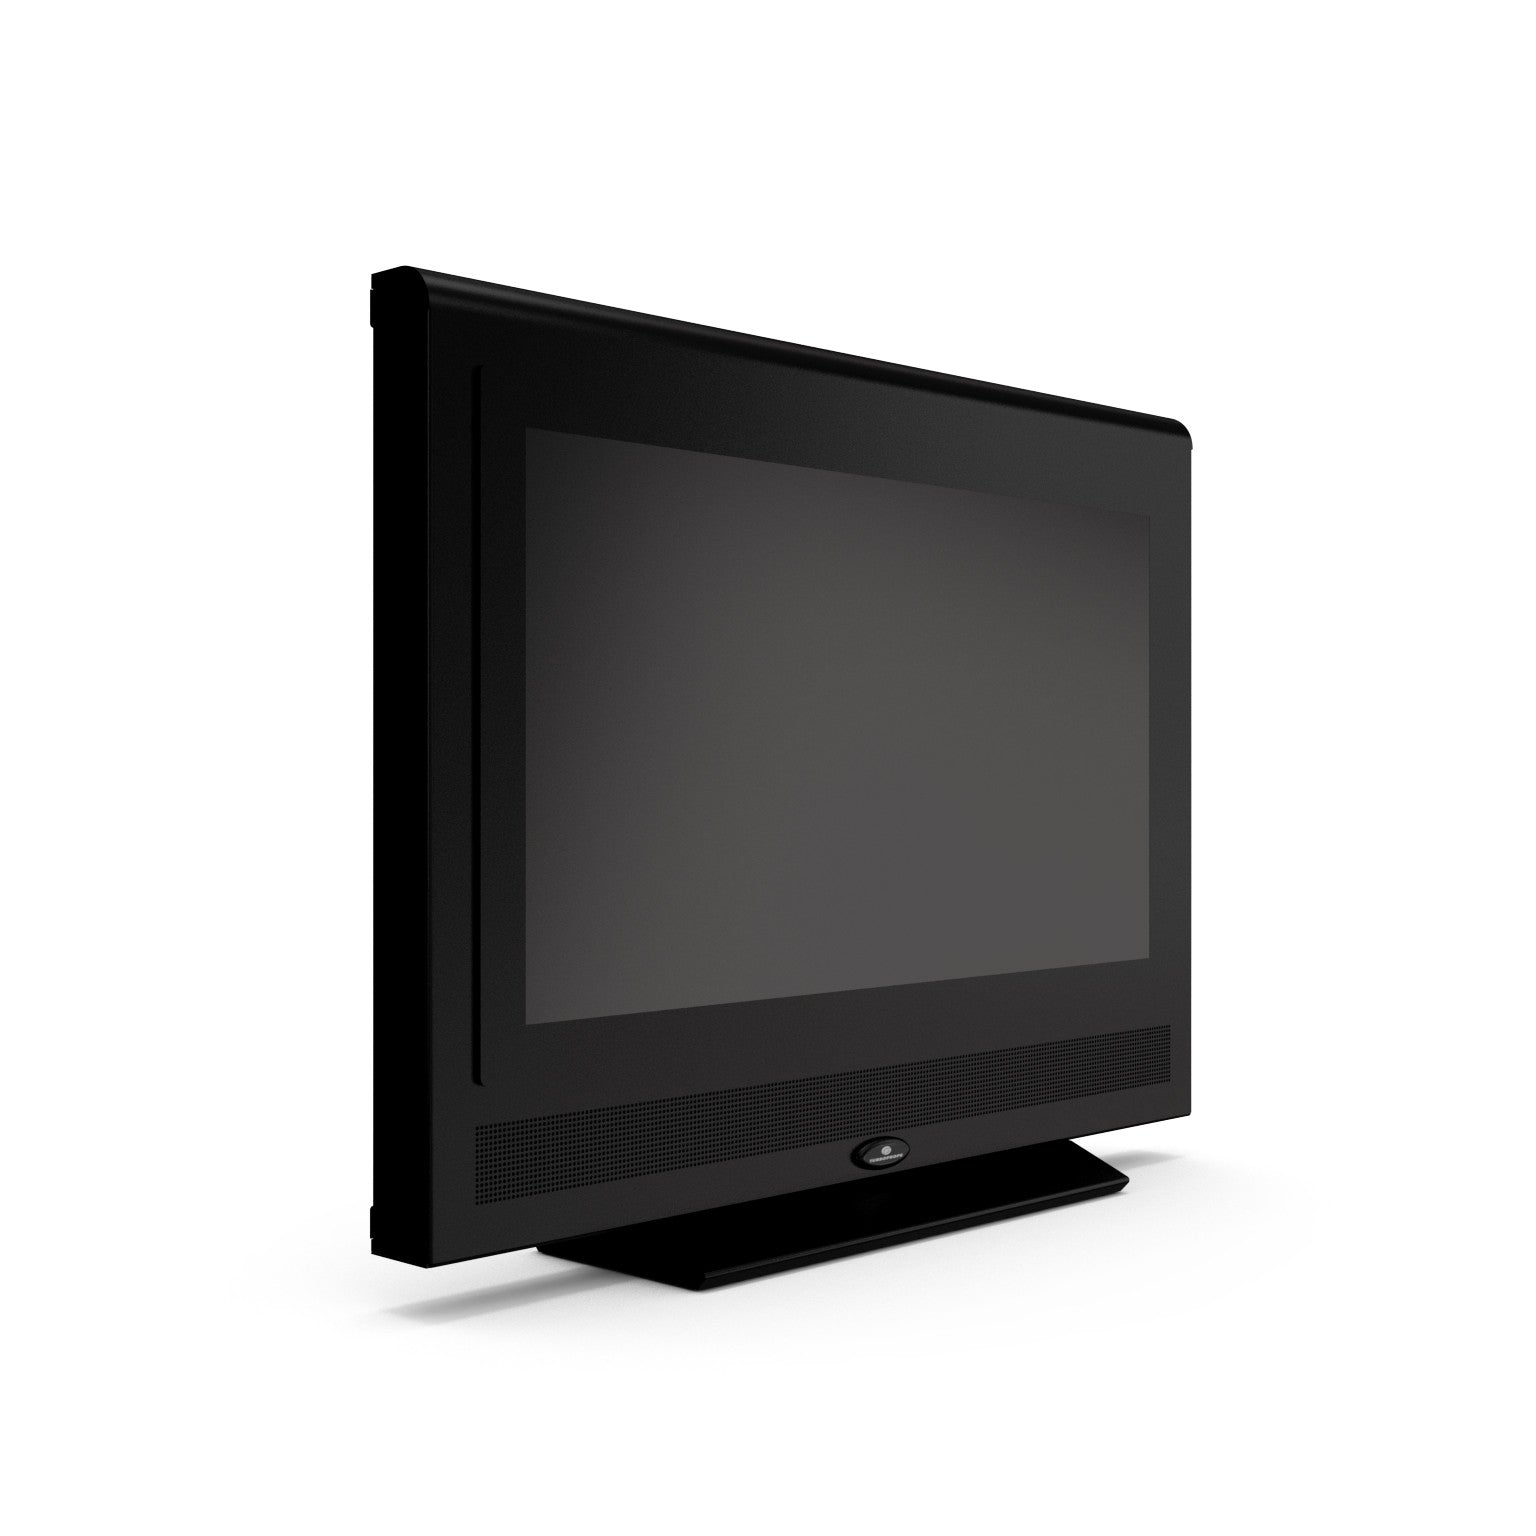 Turbo Elite 26 inch LCD TV prop with rounded top in high gloss black